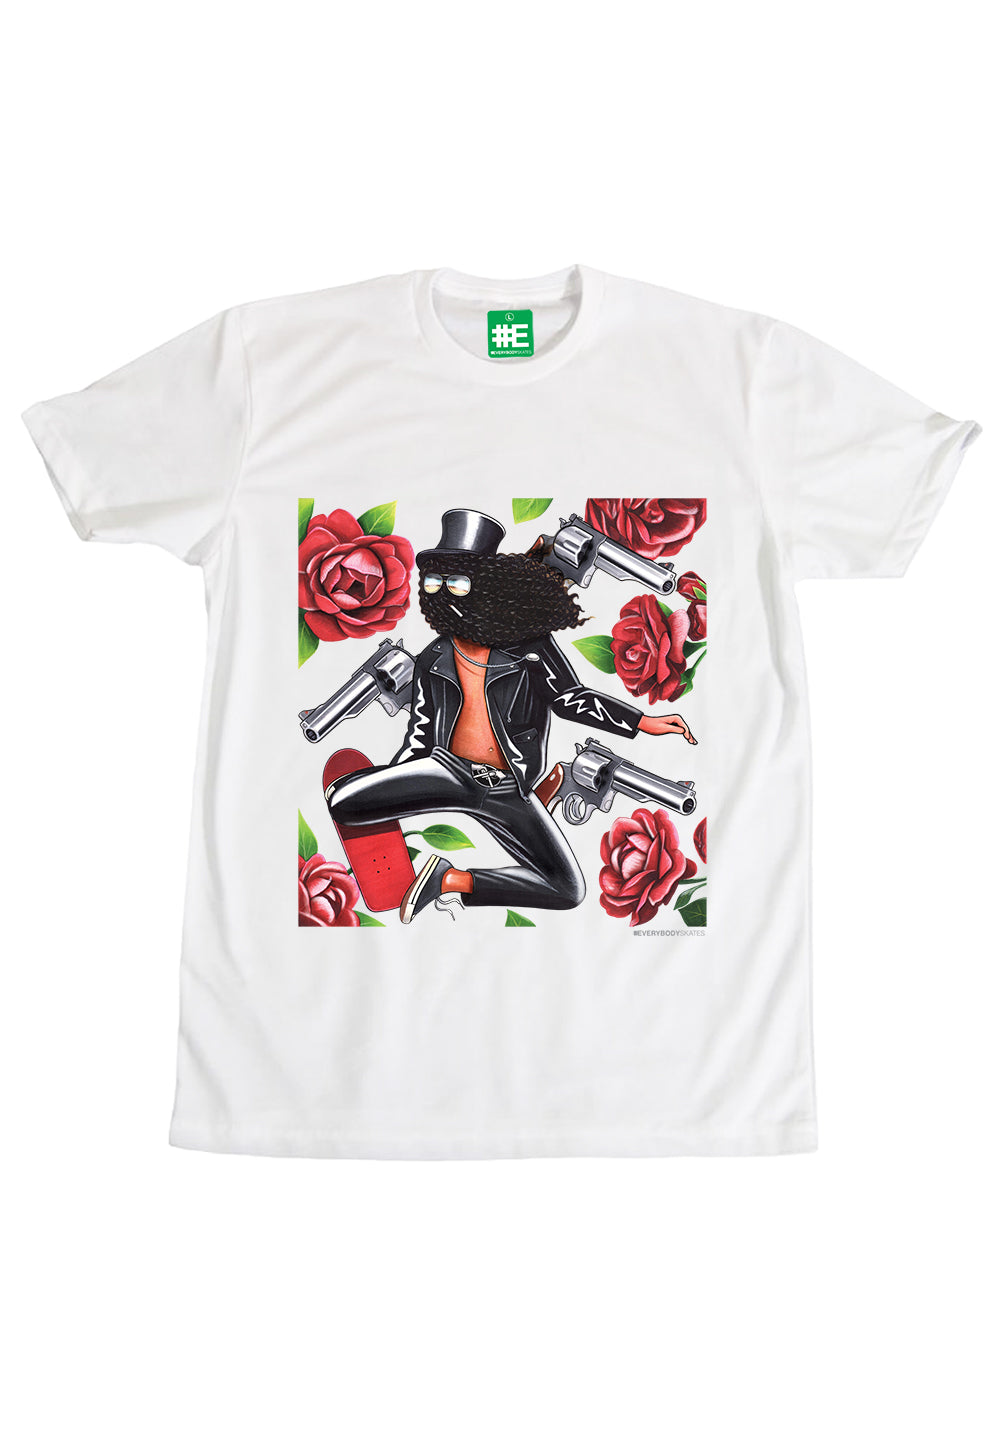 """Gats and Flowers"" Graphic T-shirt"